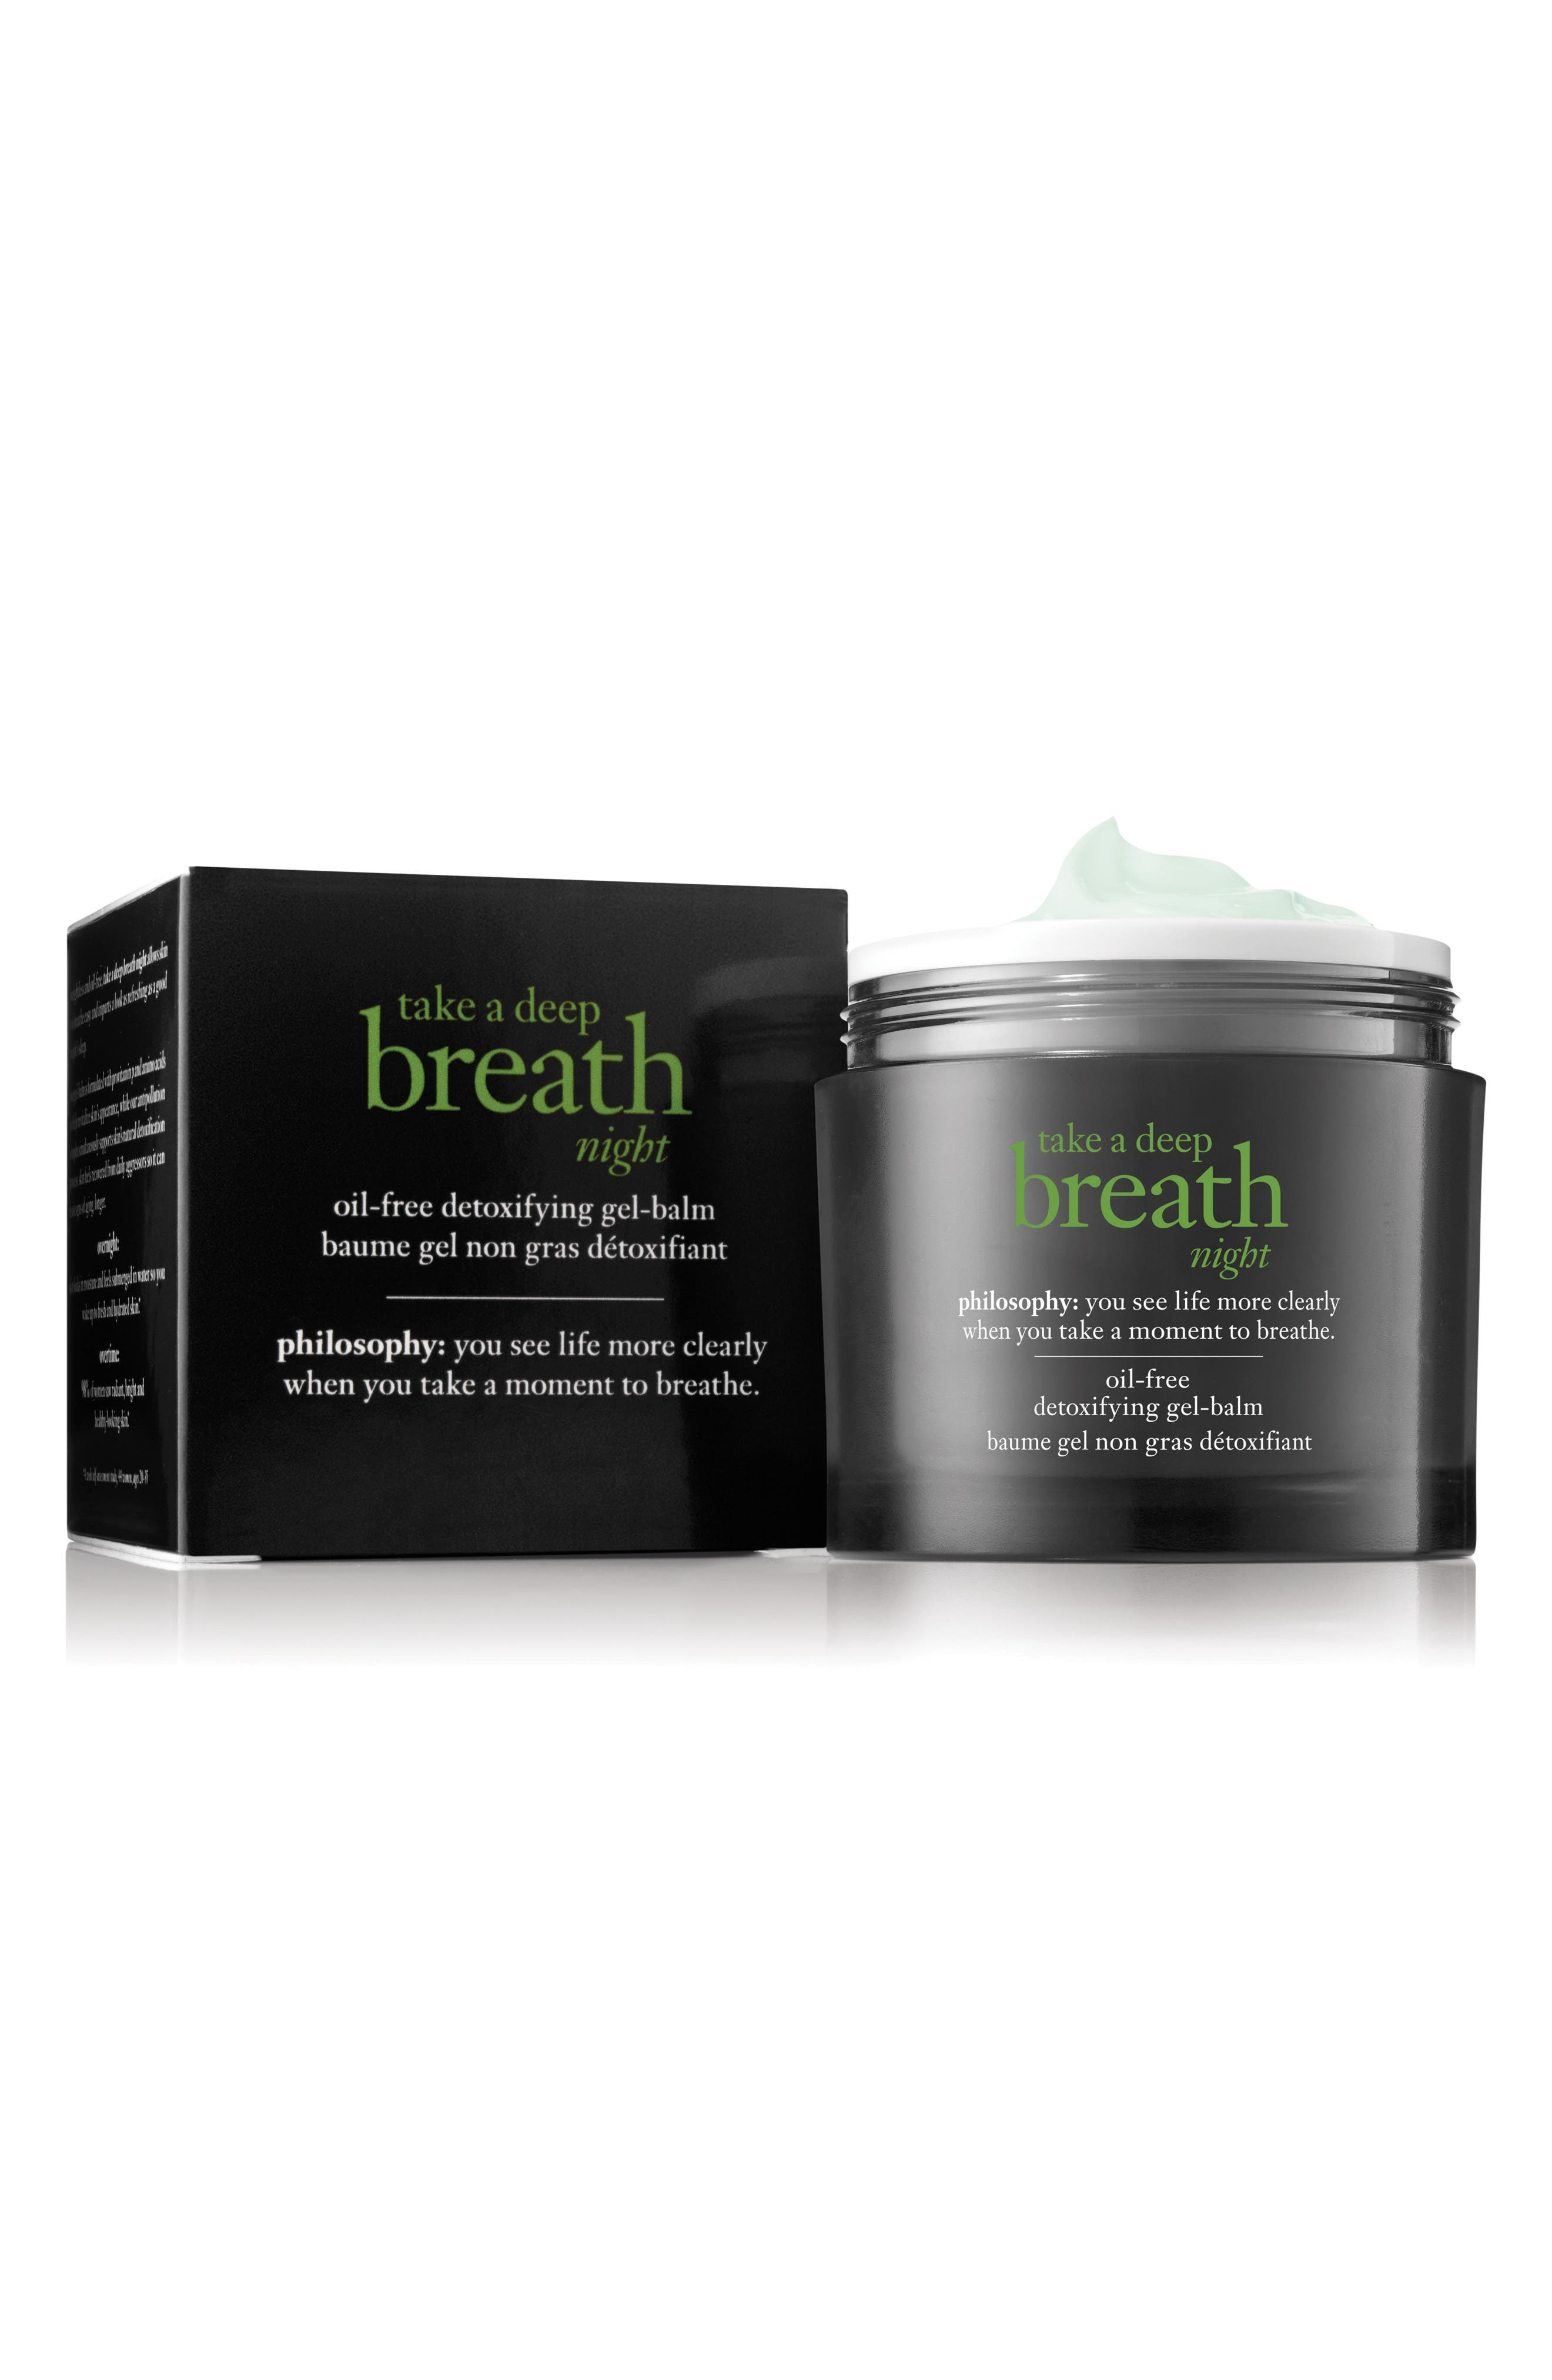 philosophy take a deep breath oil-free detoxifying night balm